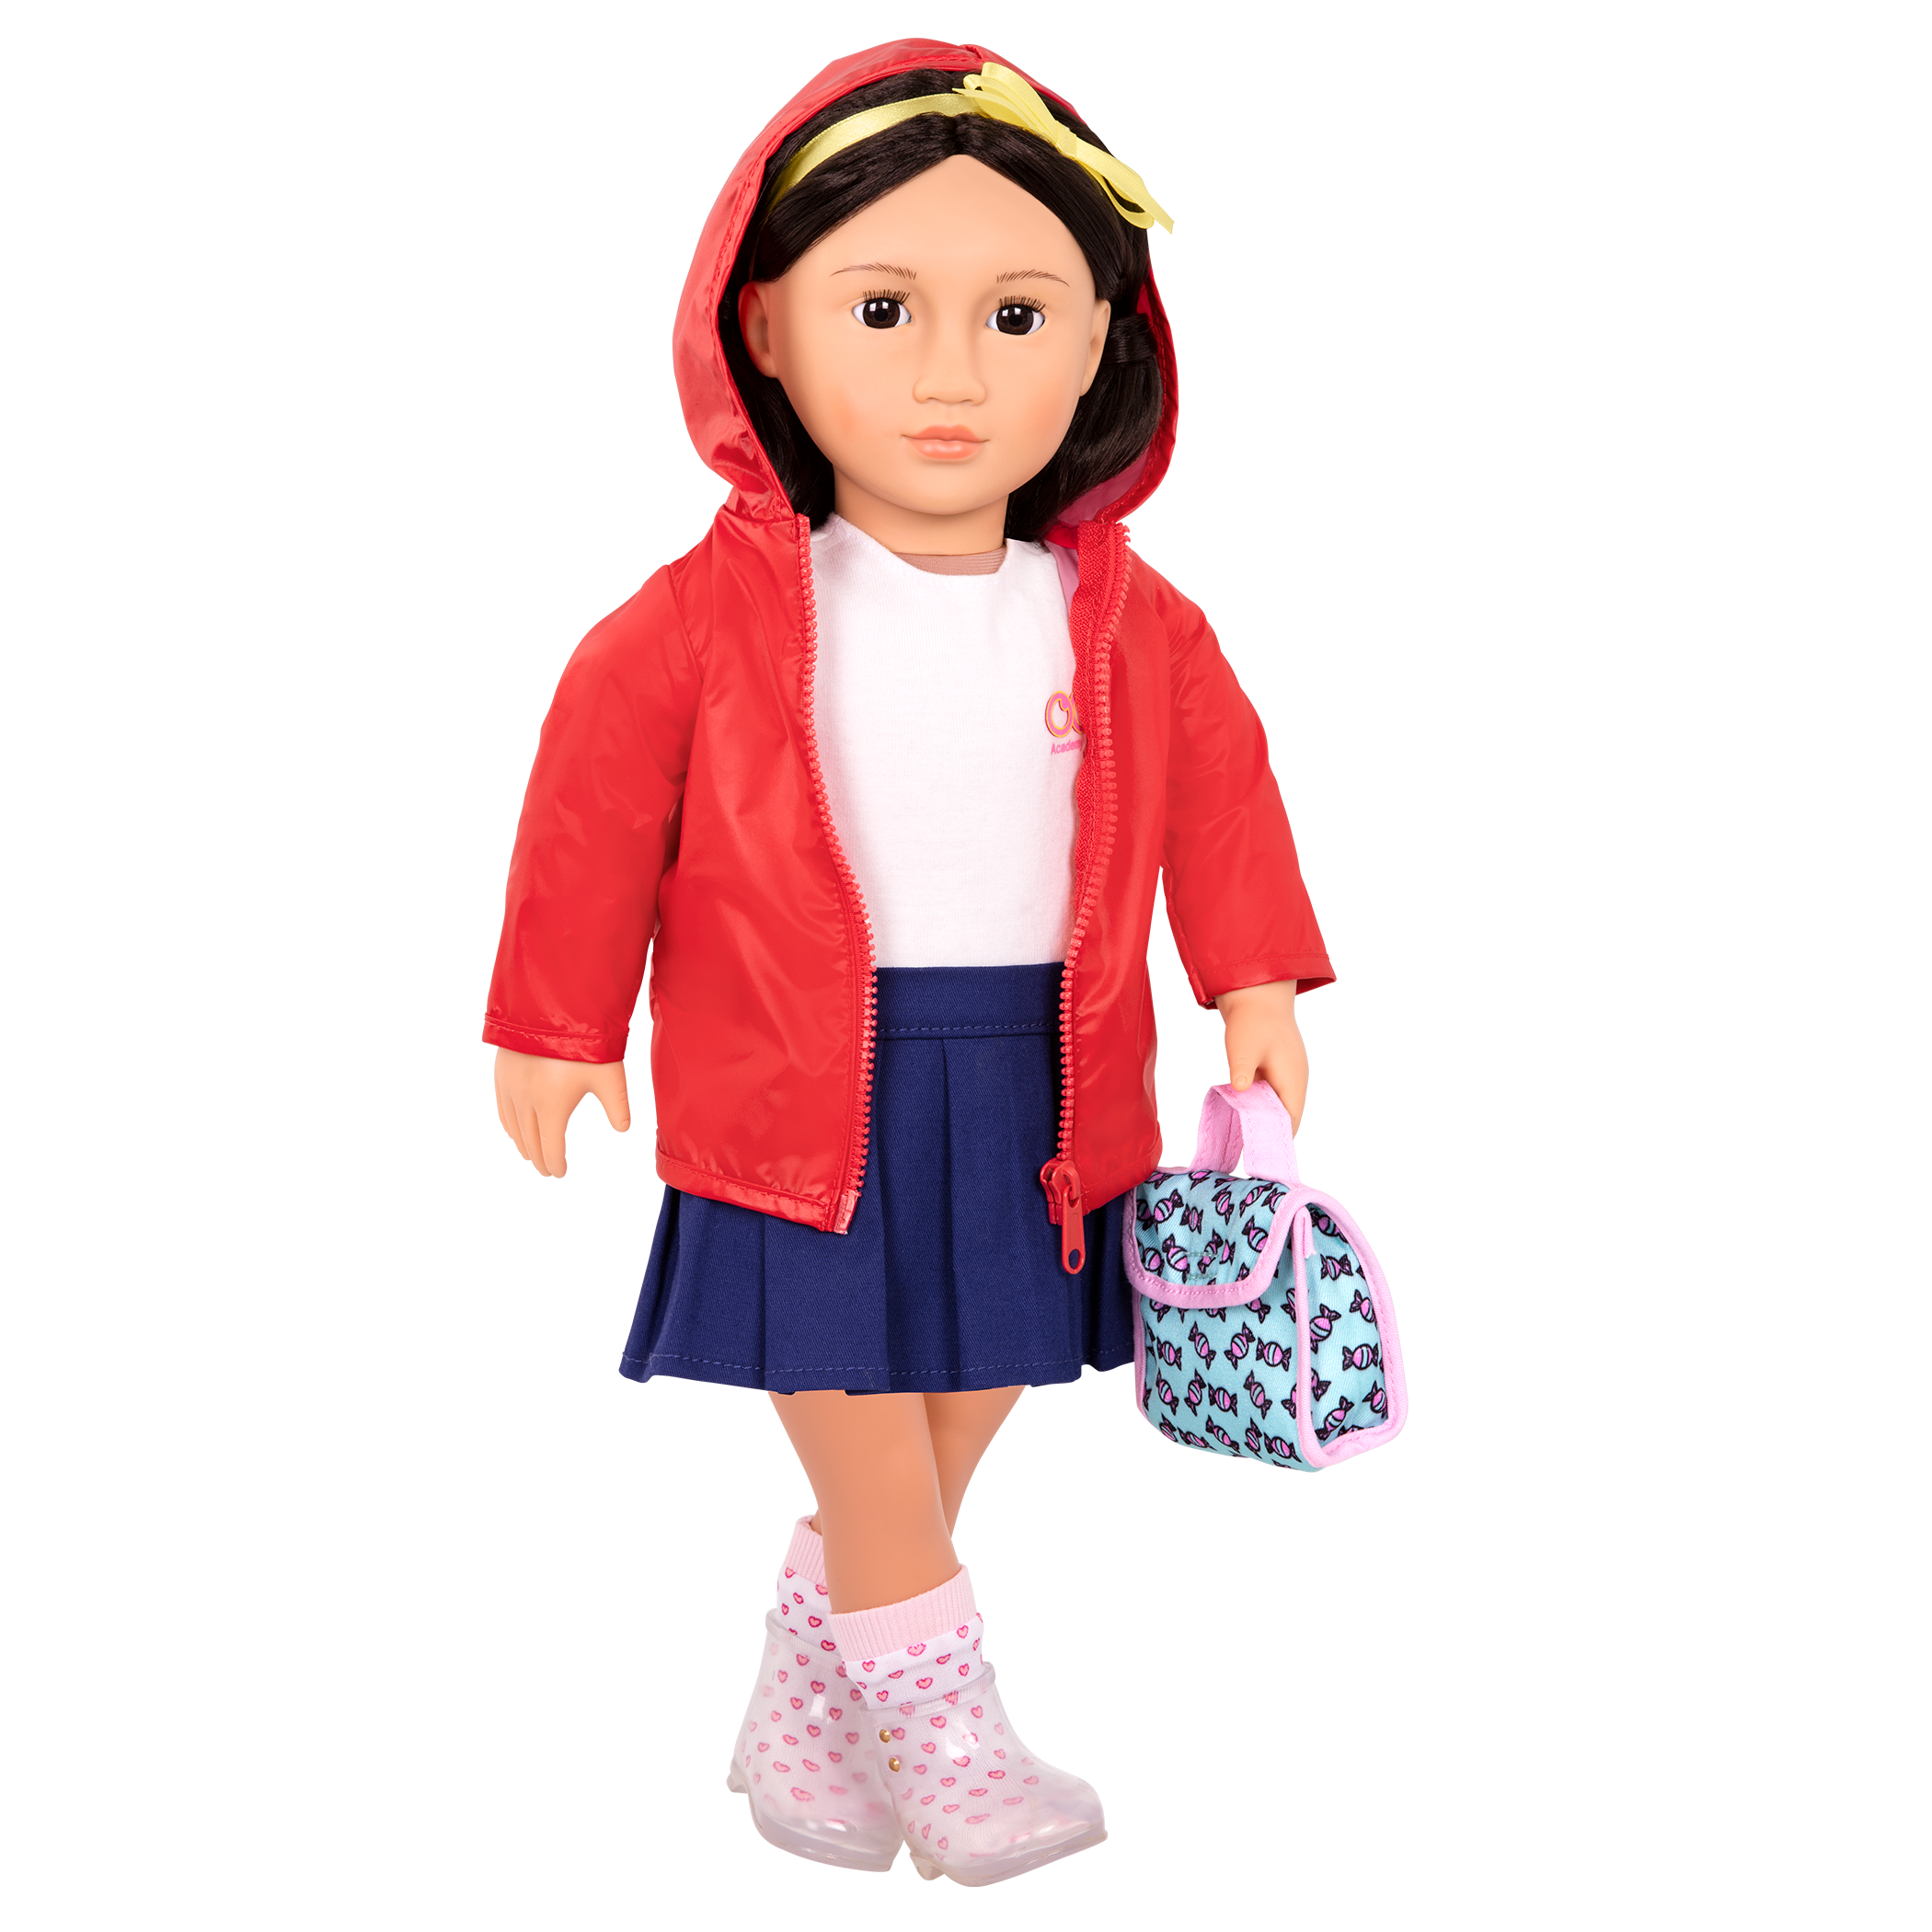 Rainy Recess  Doll School Outfit  Our Generation